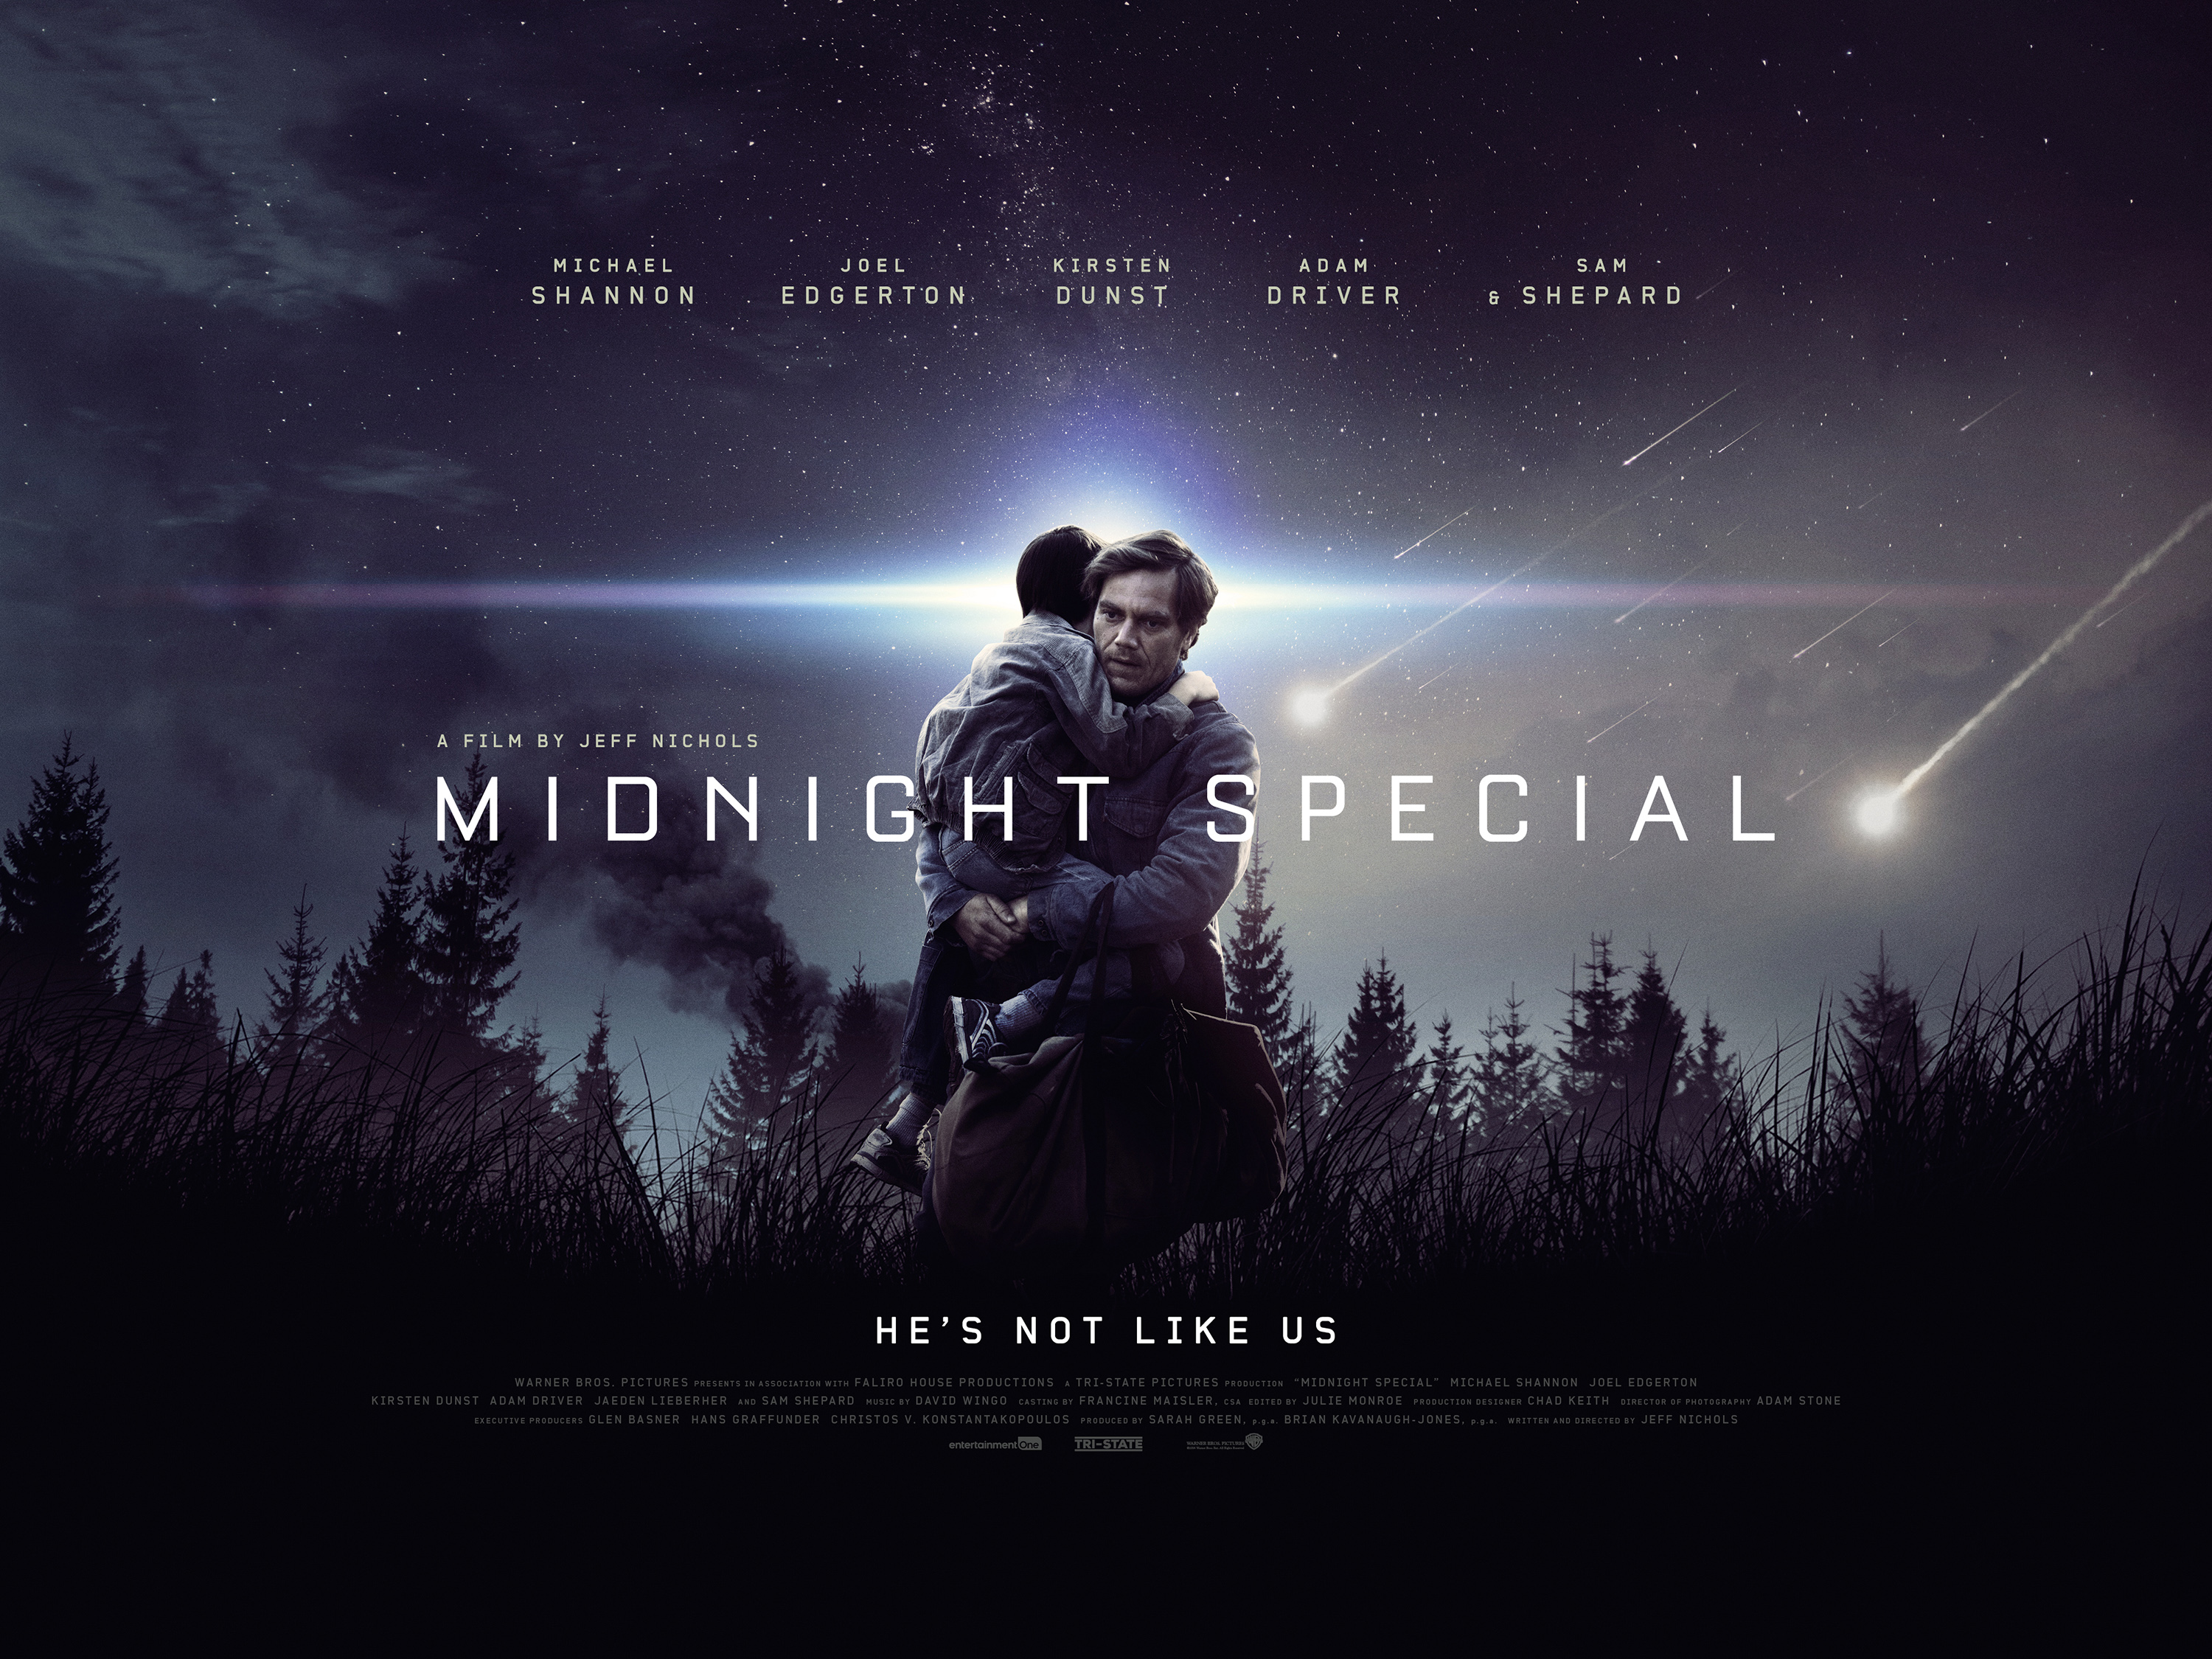 MIDNIGHT-SPECIAL-QUAD